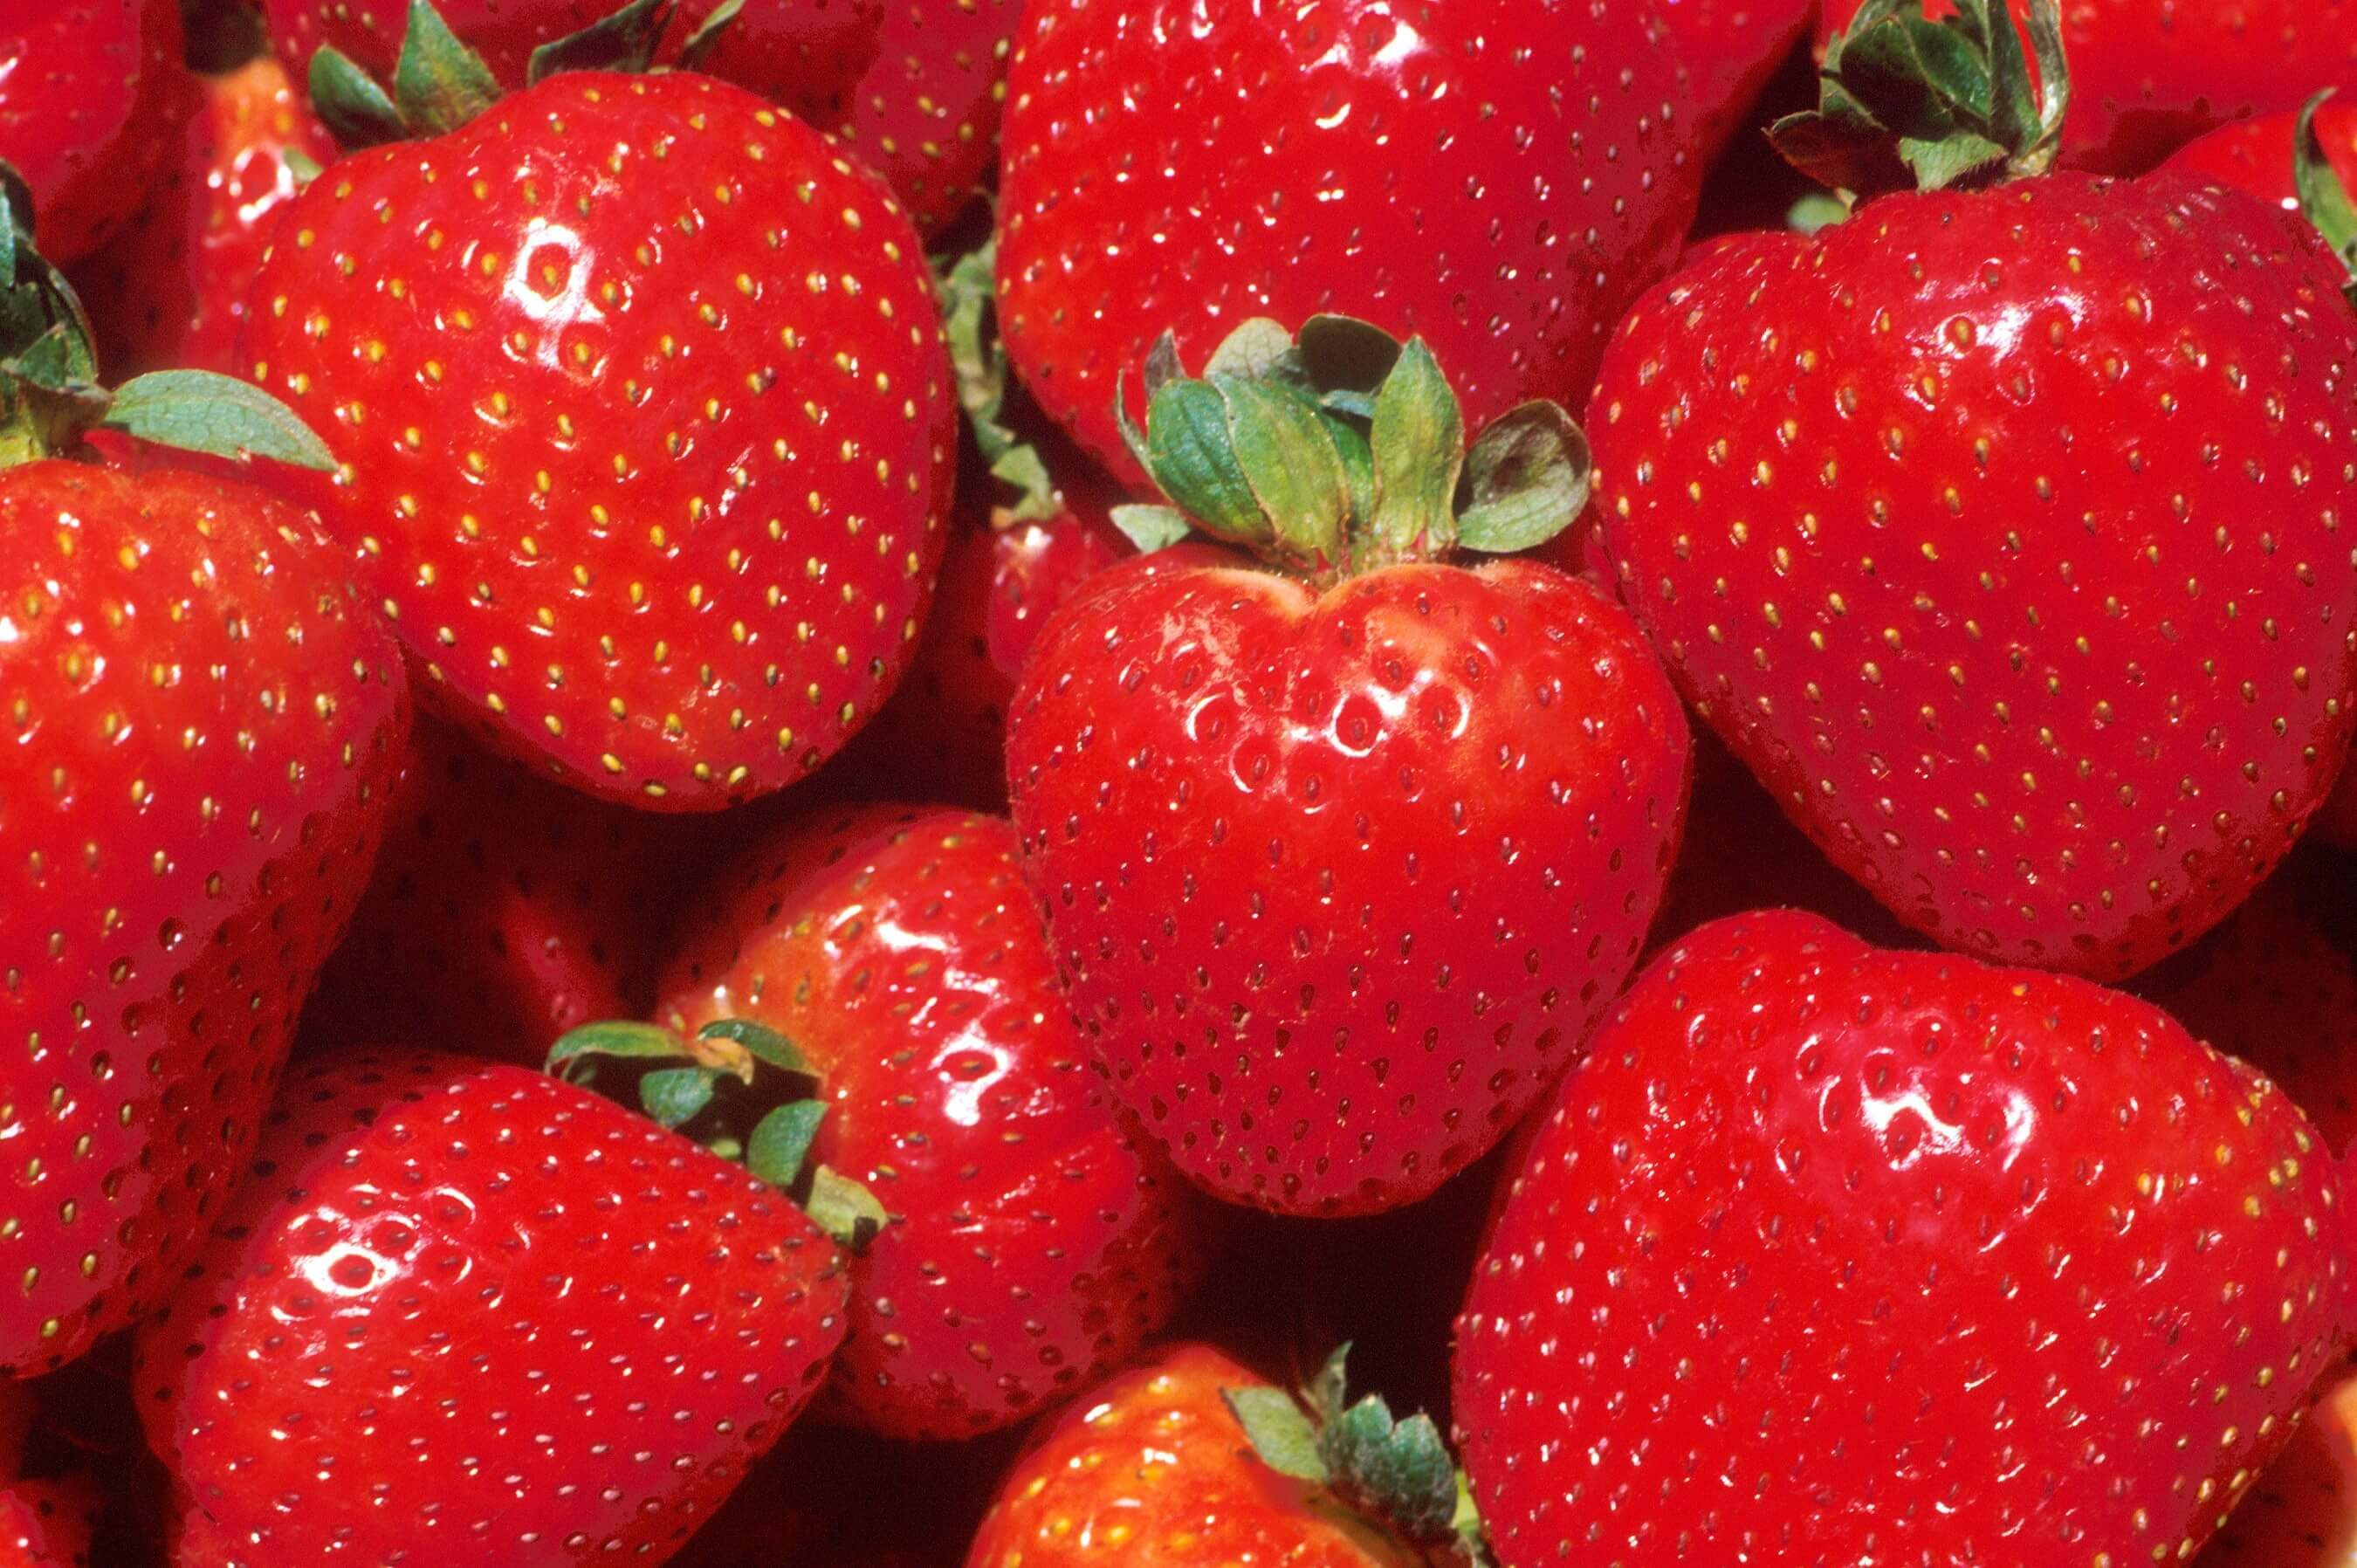 Strawberry HD